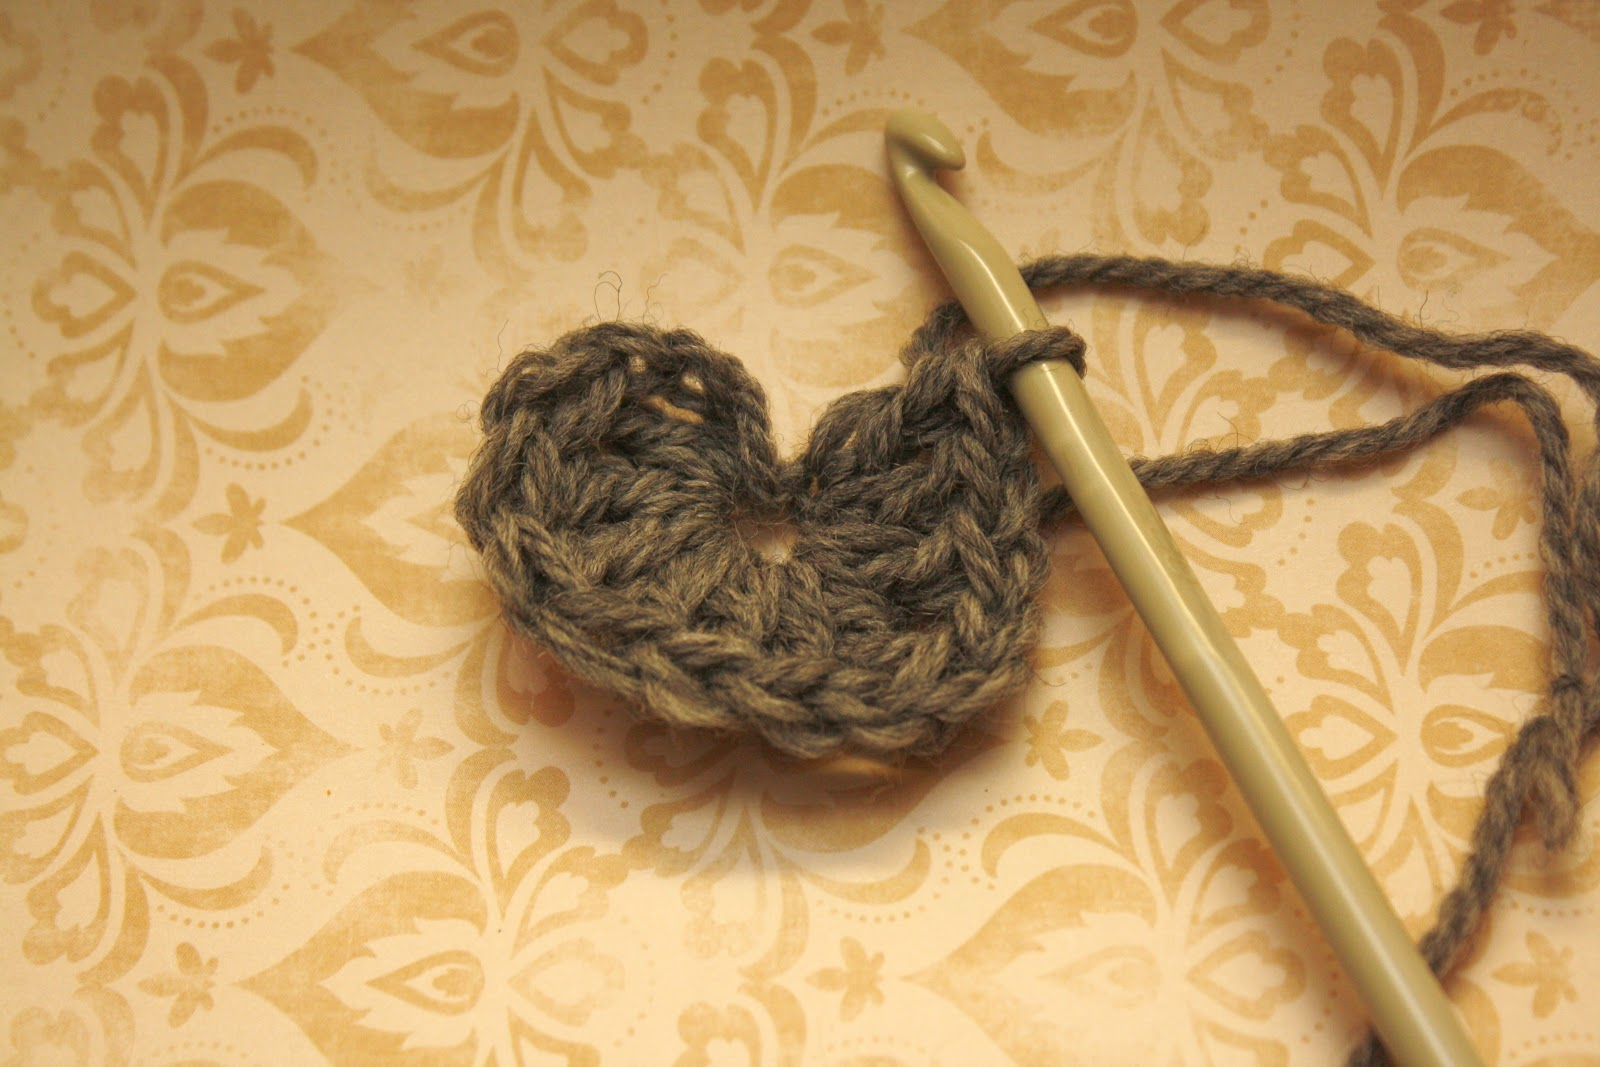 Crochet Stitches Dtr : How To Crochet a Heart: {crochet} A Heart